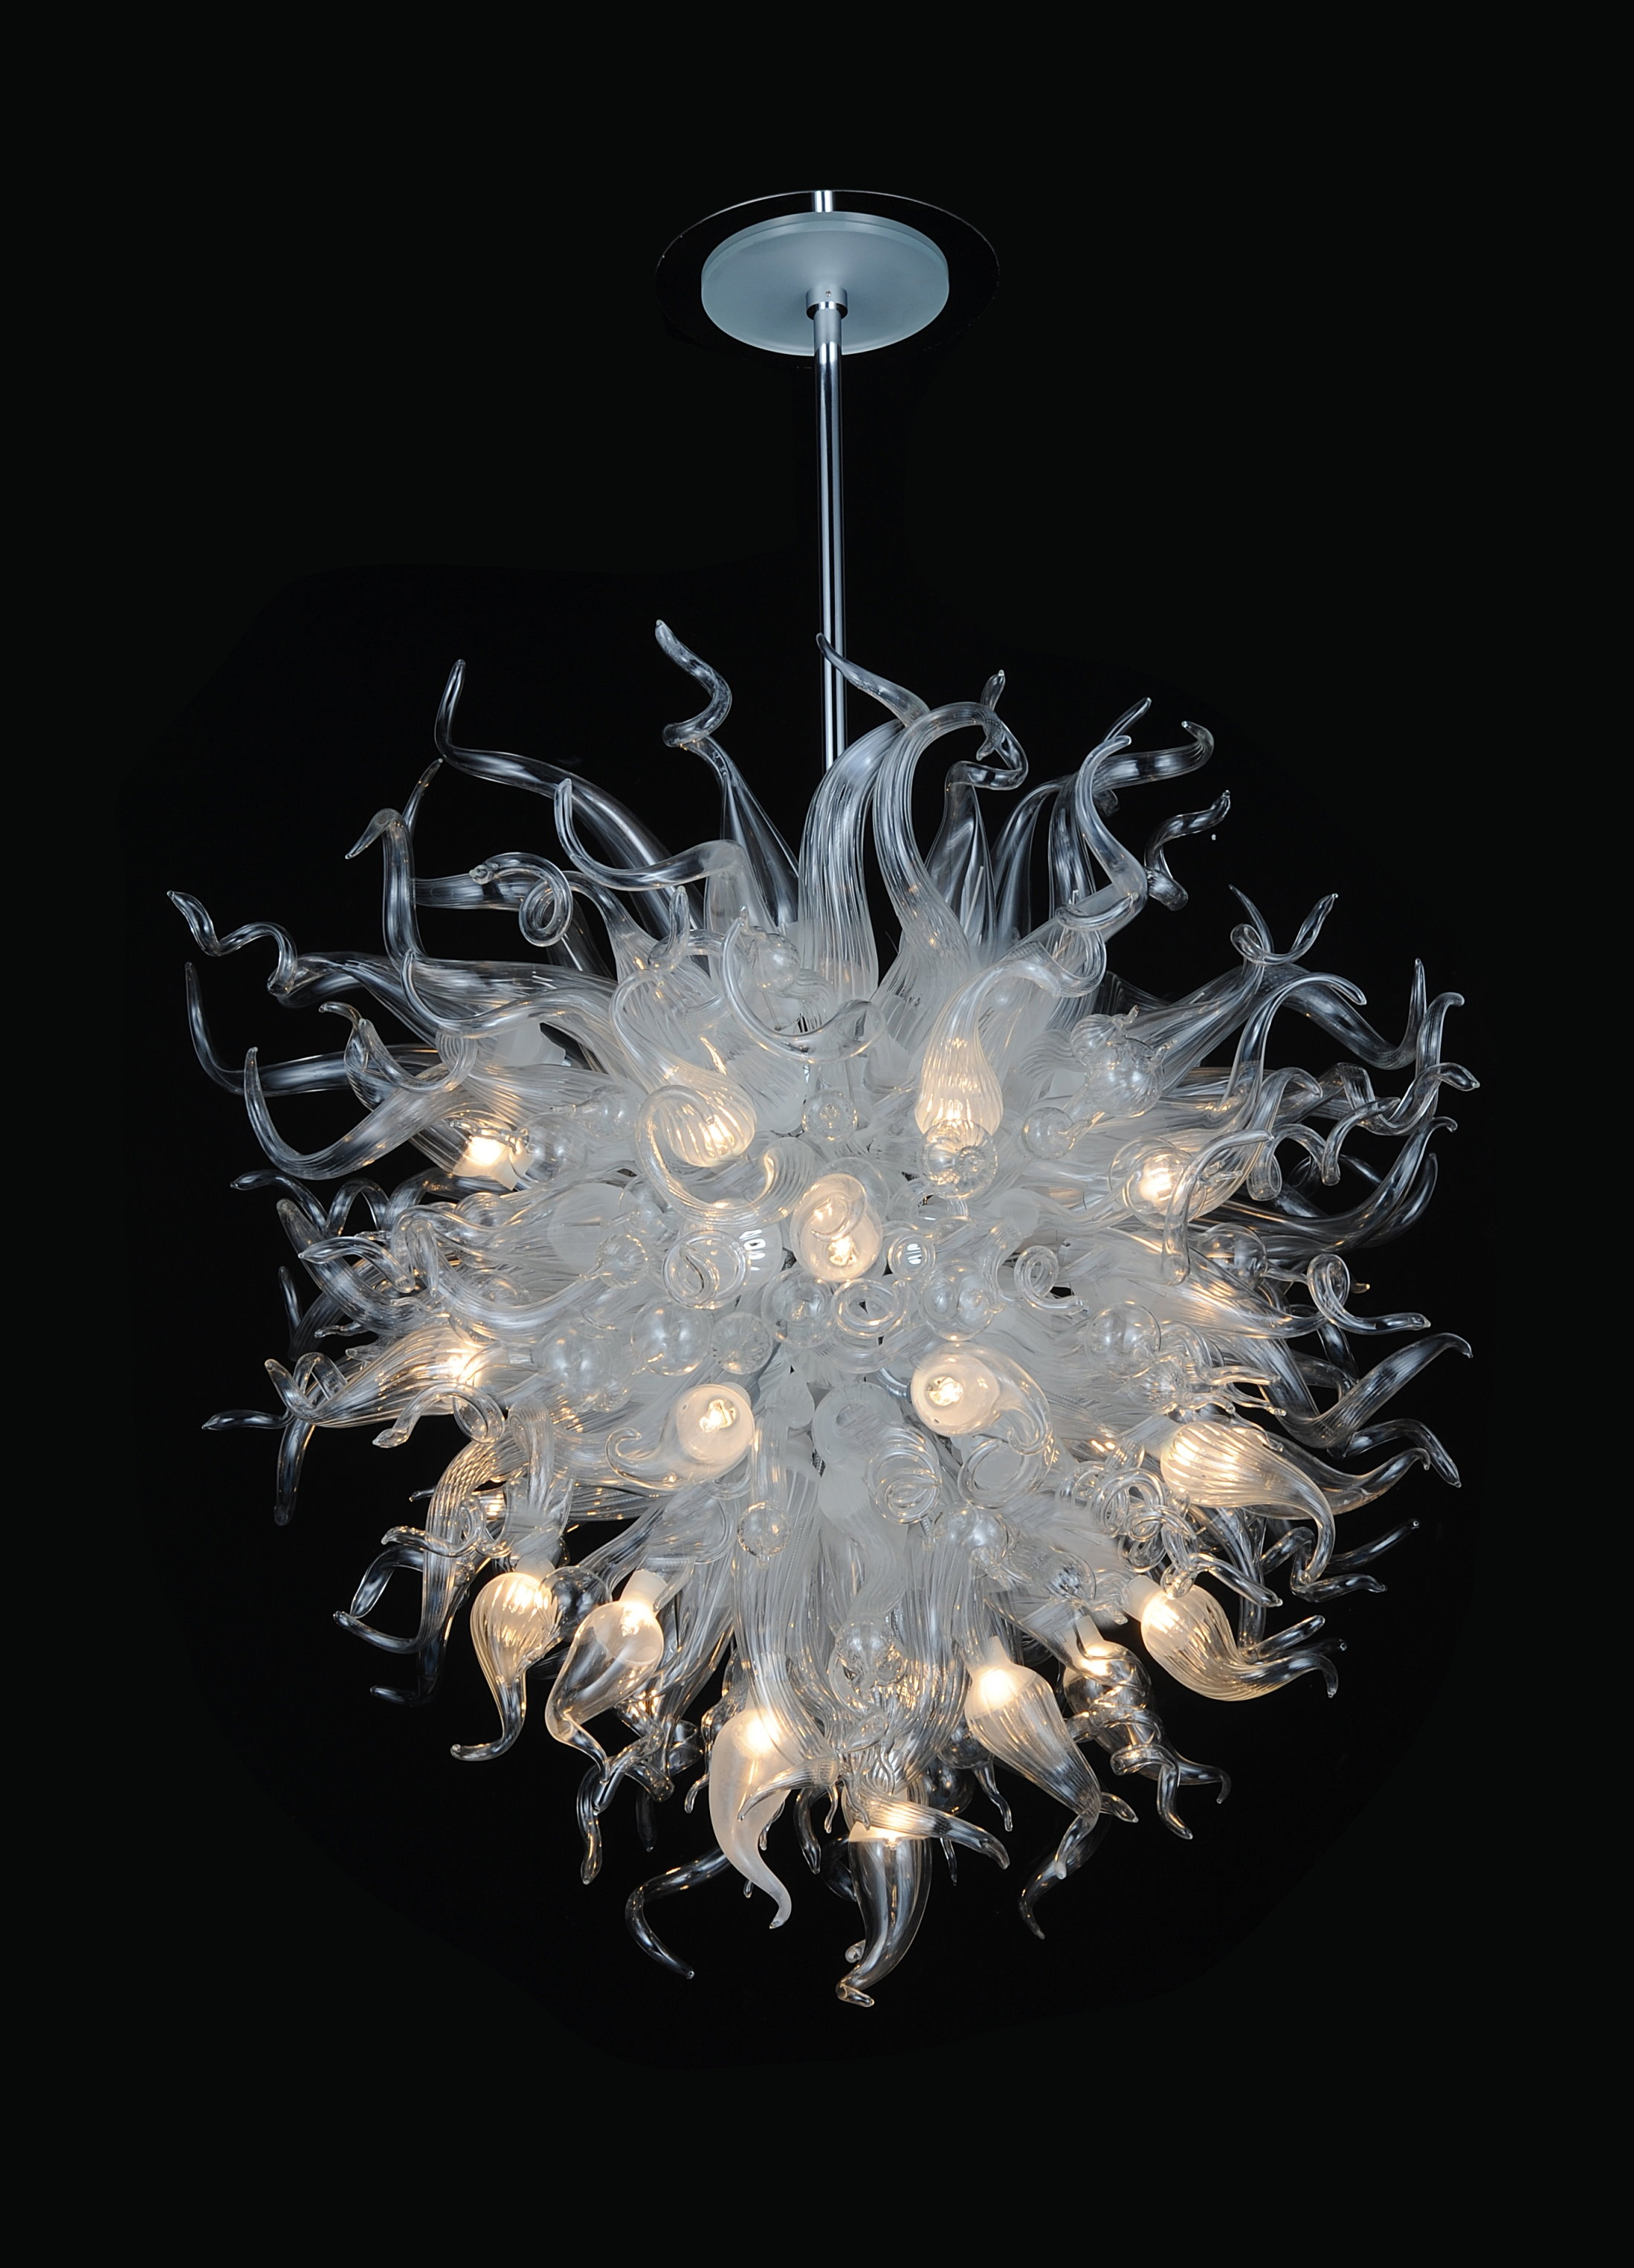 Modern Glass Chandelier Lighting Throughout Italian Chandeliers Contemporary (#9 of 12)